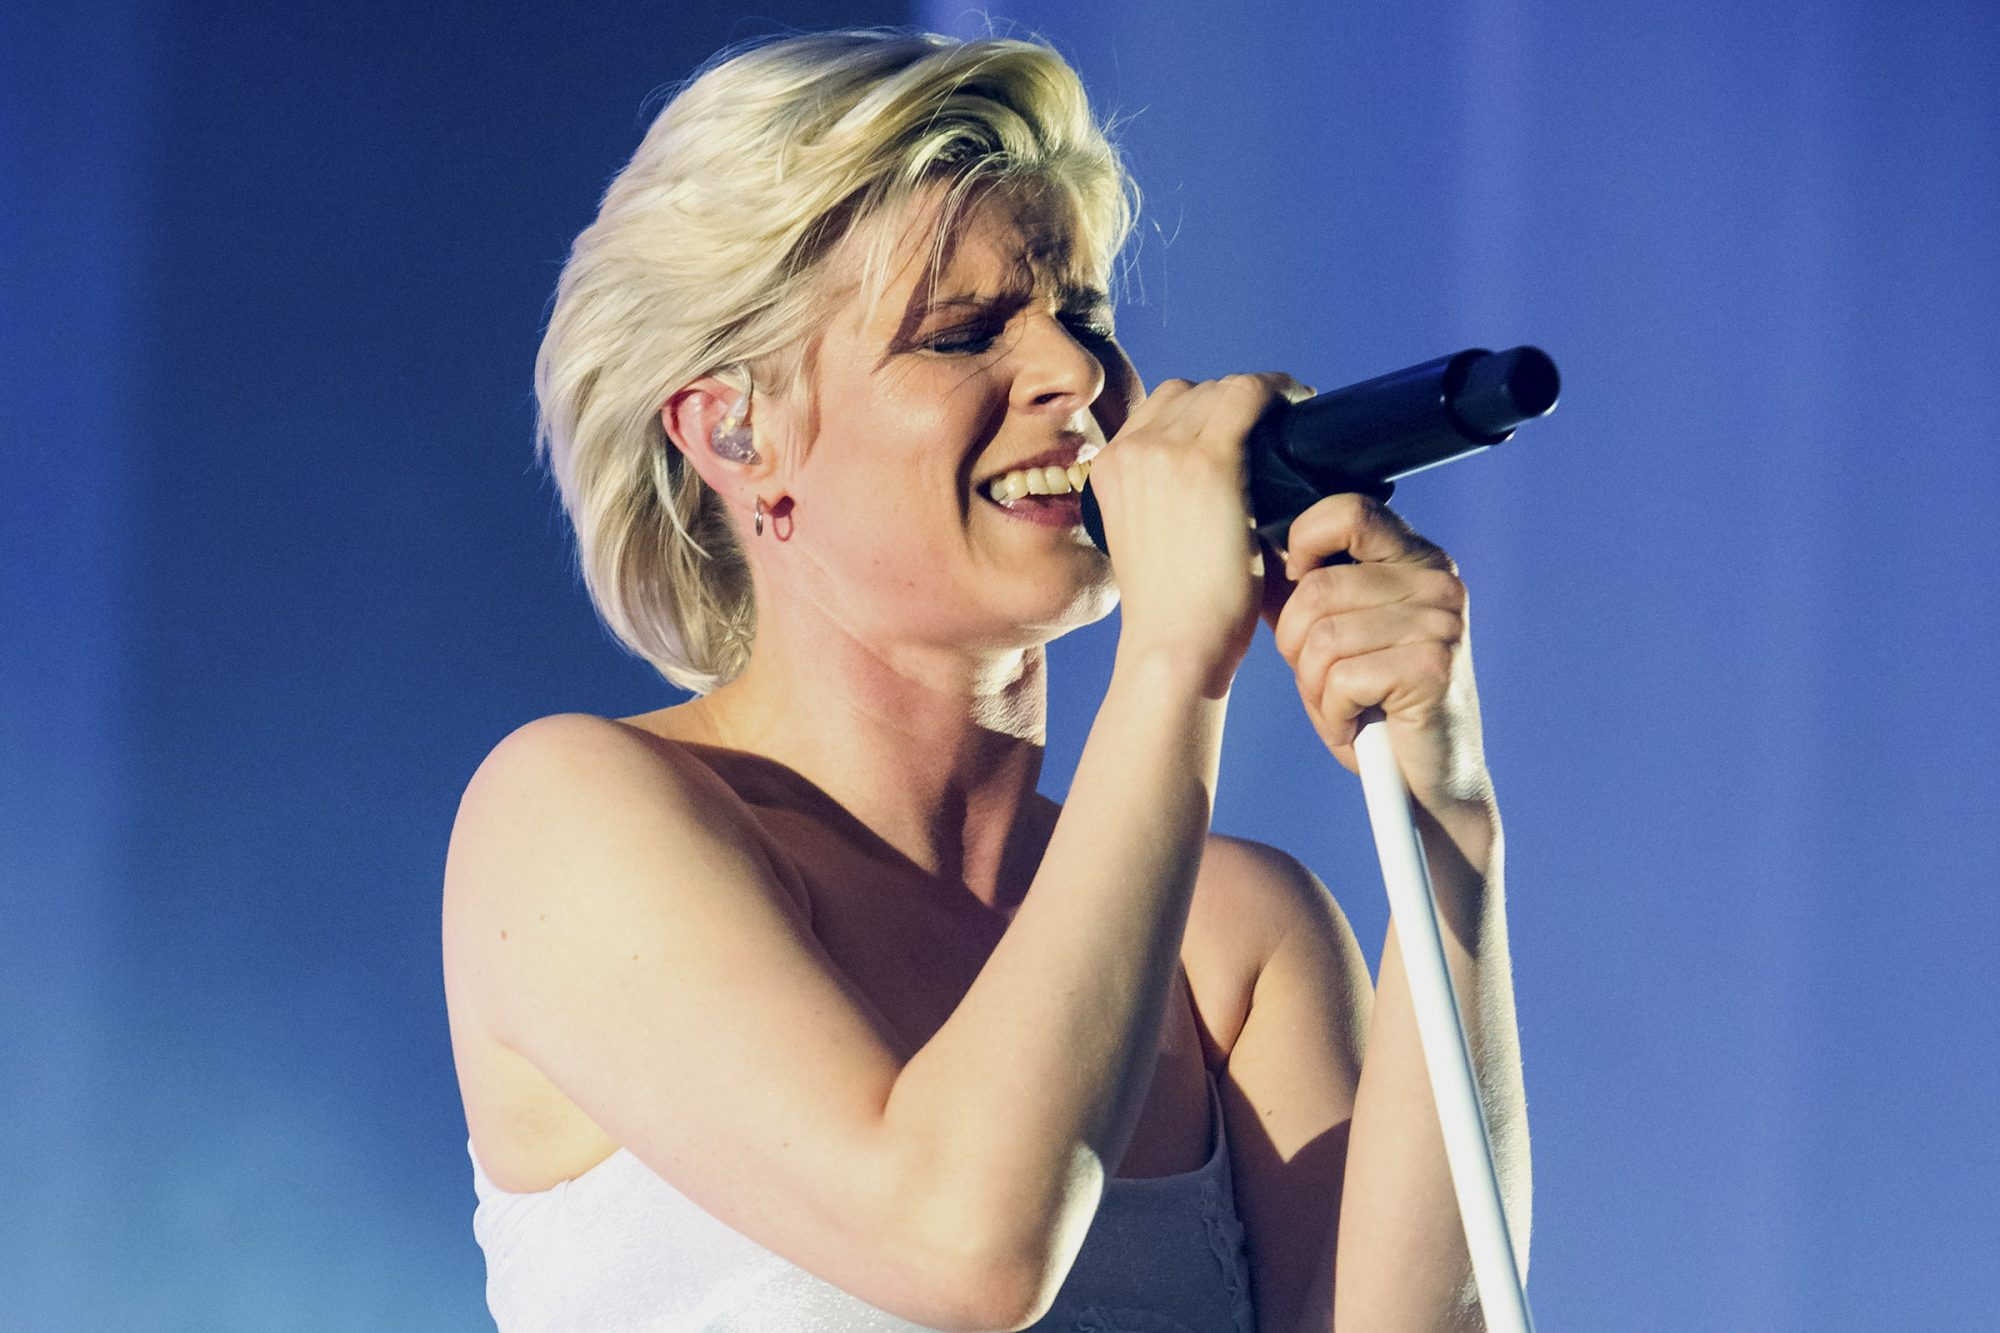 2. Robyn on the Honey tour